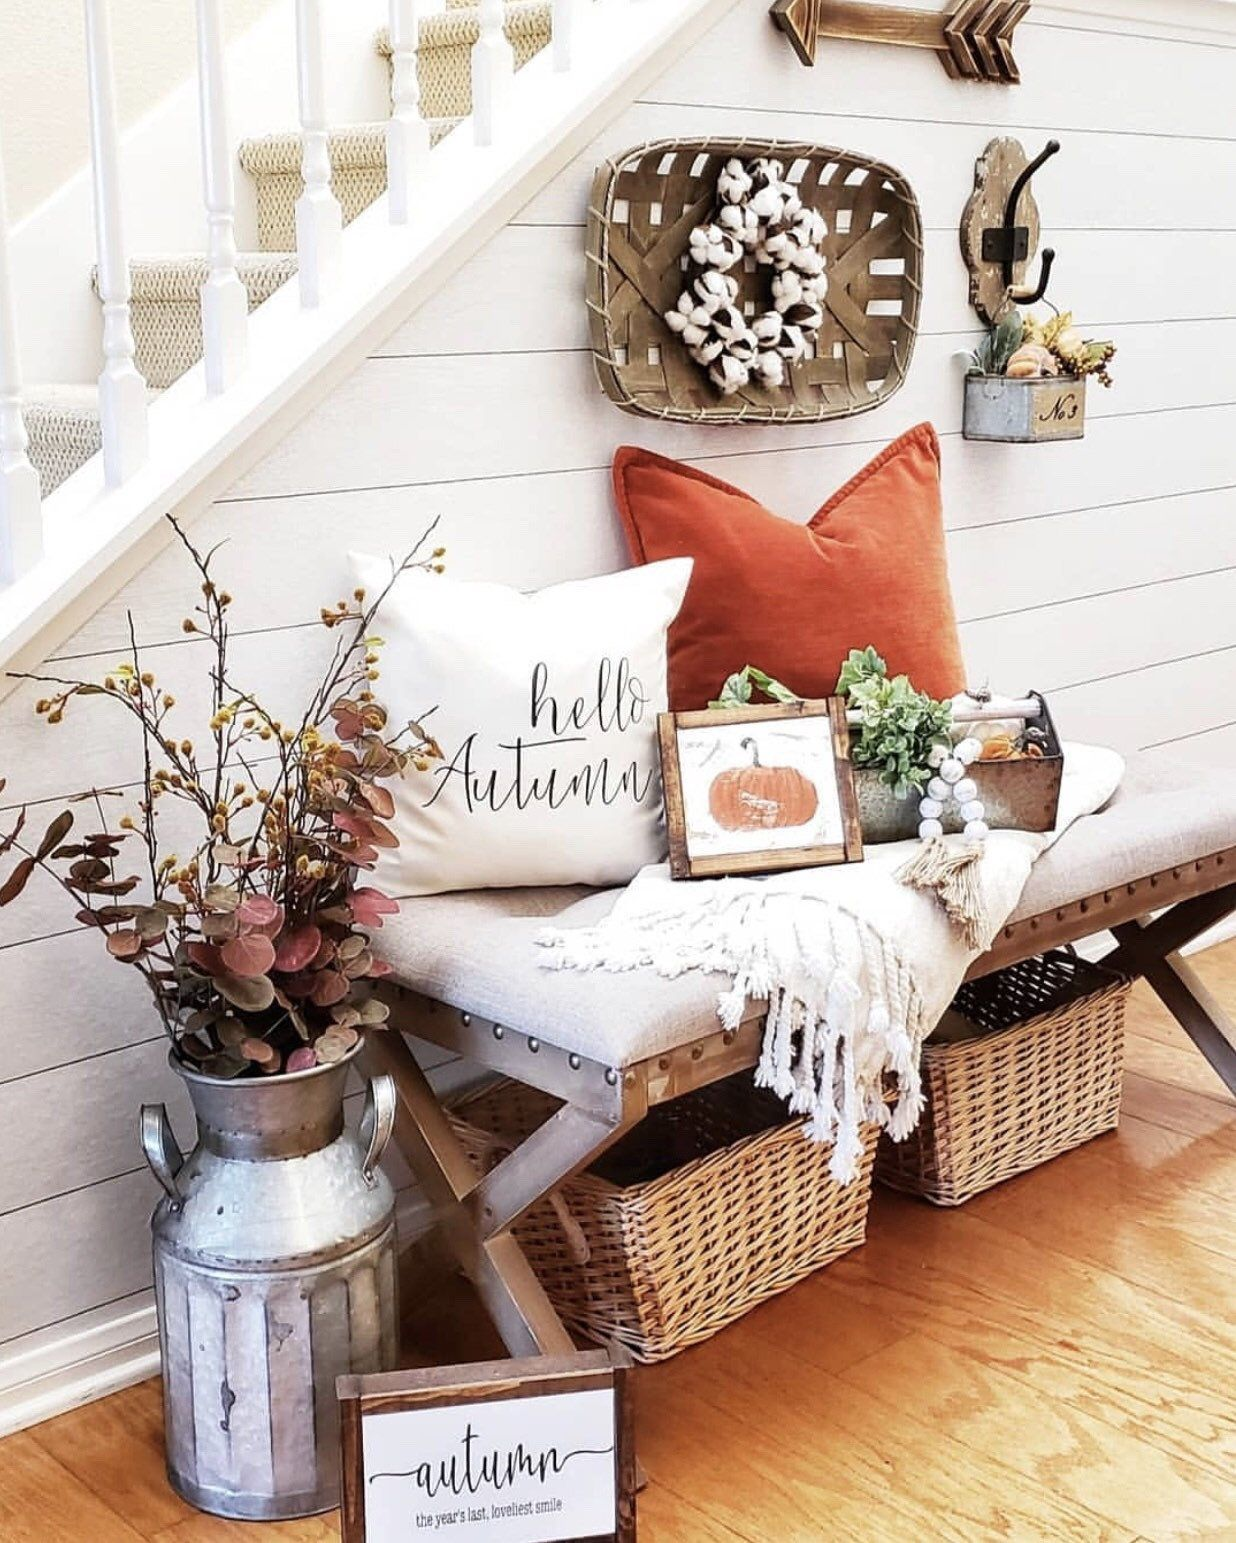 hello autumn pillow cover, farmhouse pillow cover, fall pillow cover for fall, autumn pillow cover, thanksgiving pillow cover, fall decor